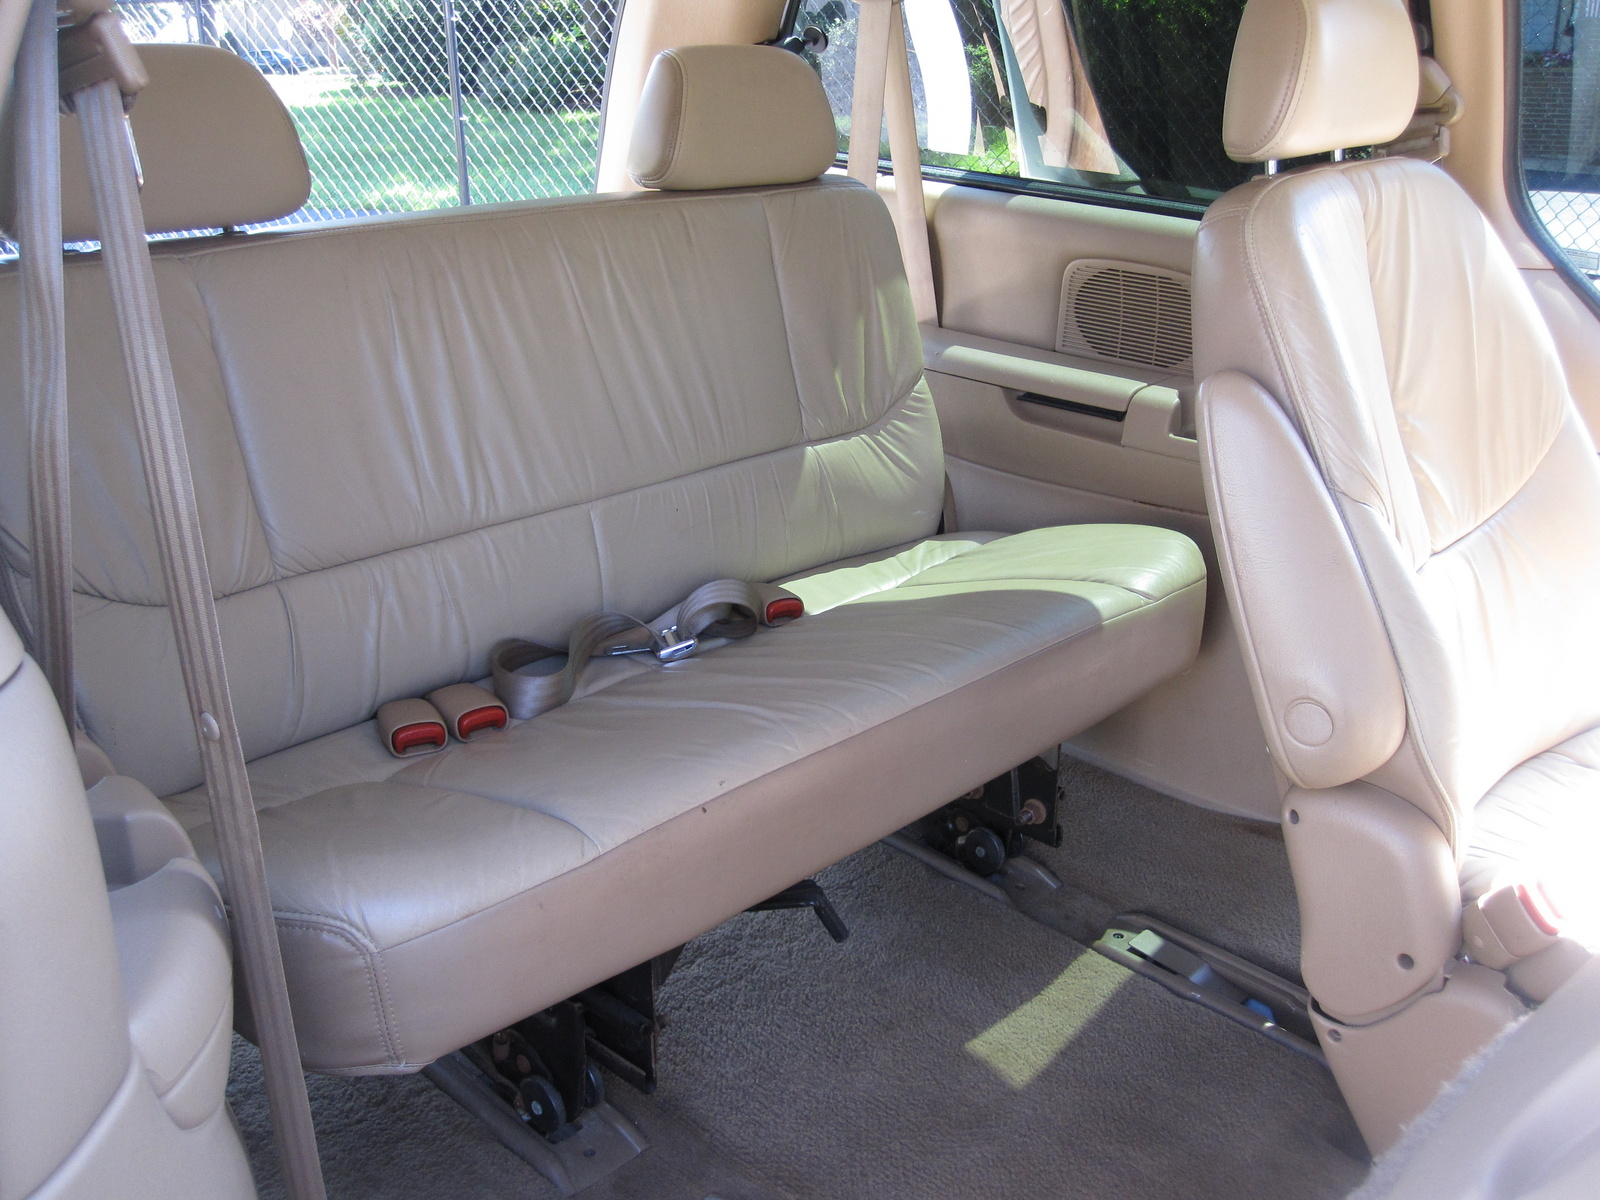 1998 chrysler town country pictures cargurus for 1999 chrysler town and country window problems